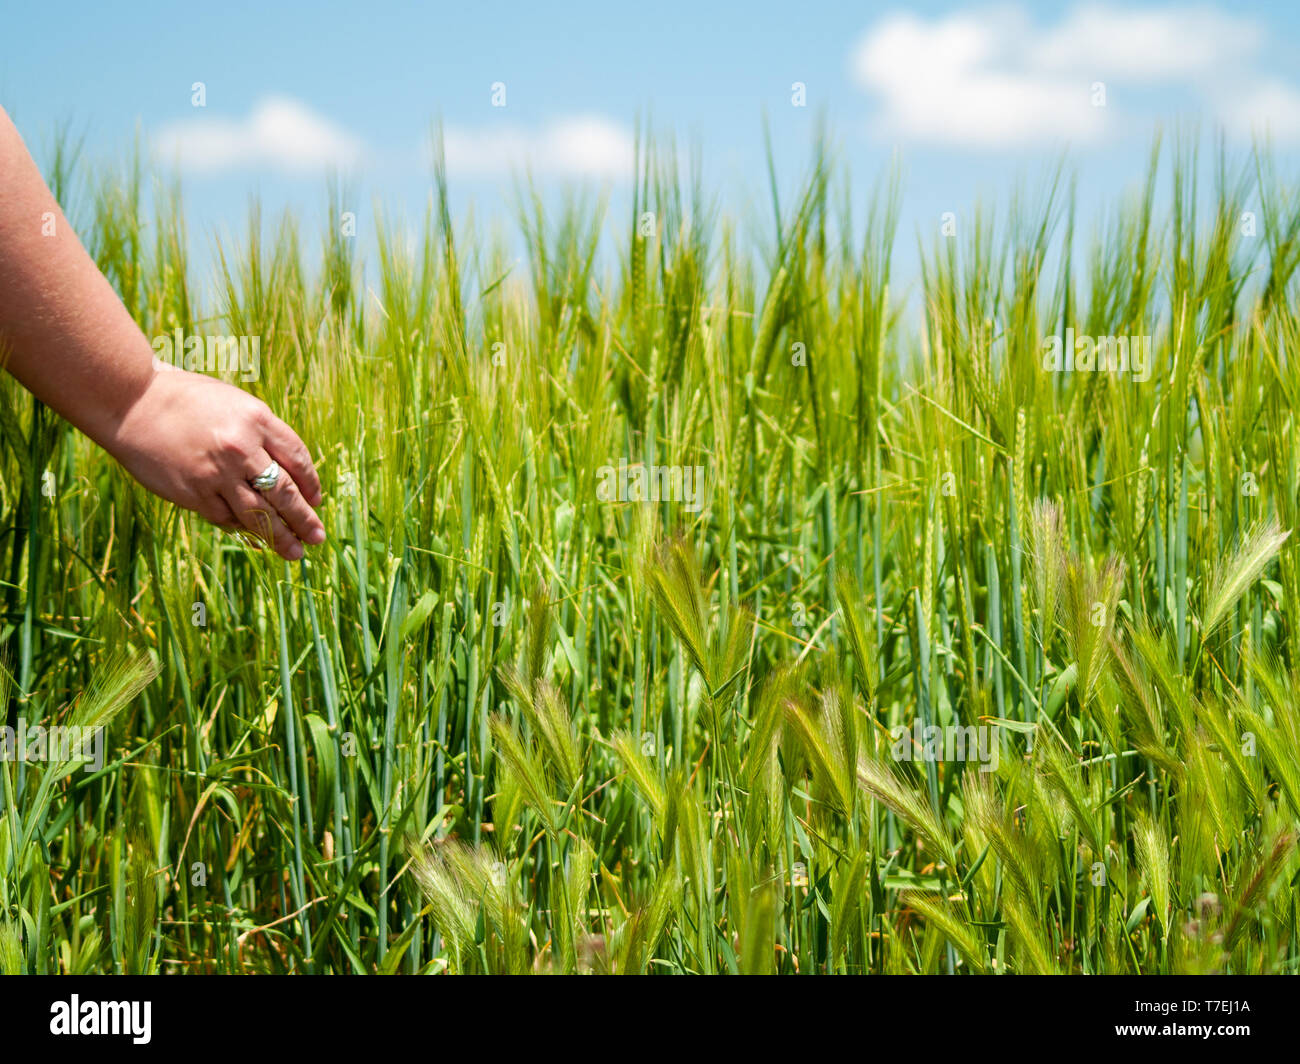 Unrecognizable person playing with his hand the plants in a crop field in spring barley Stock Photo